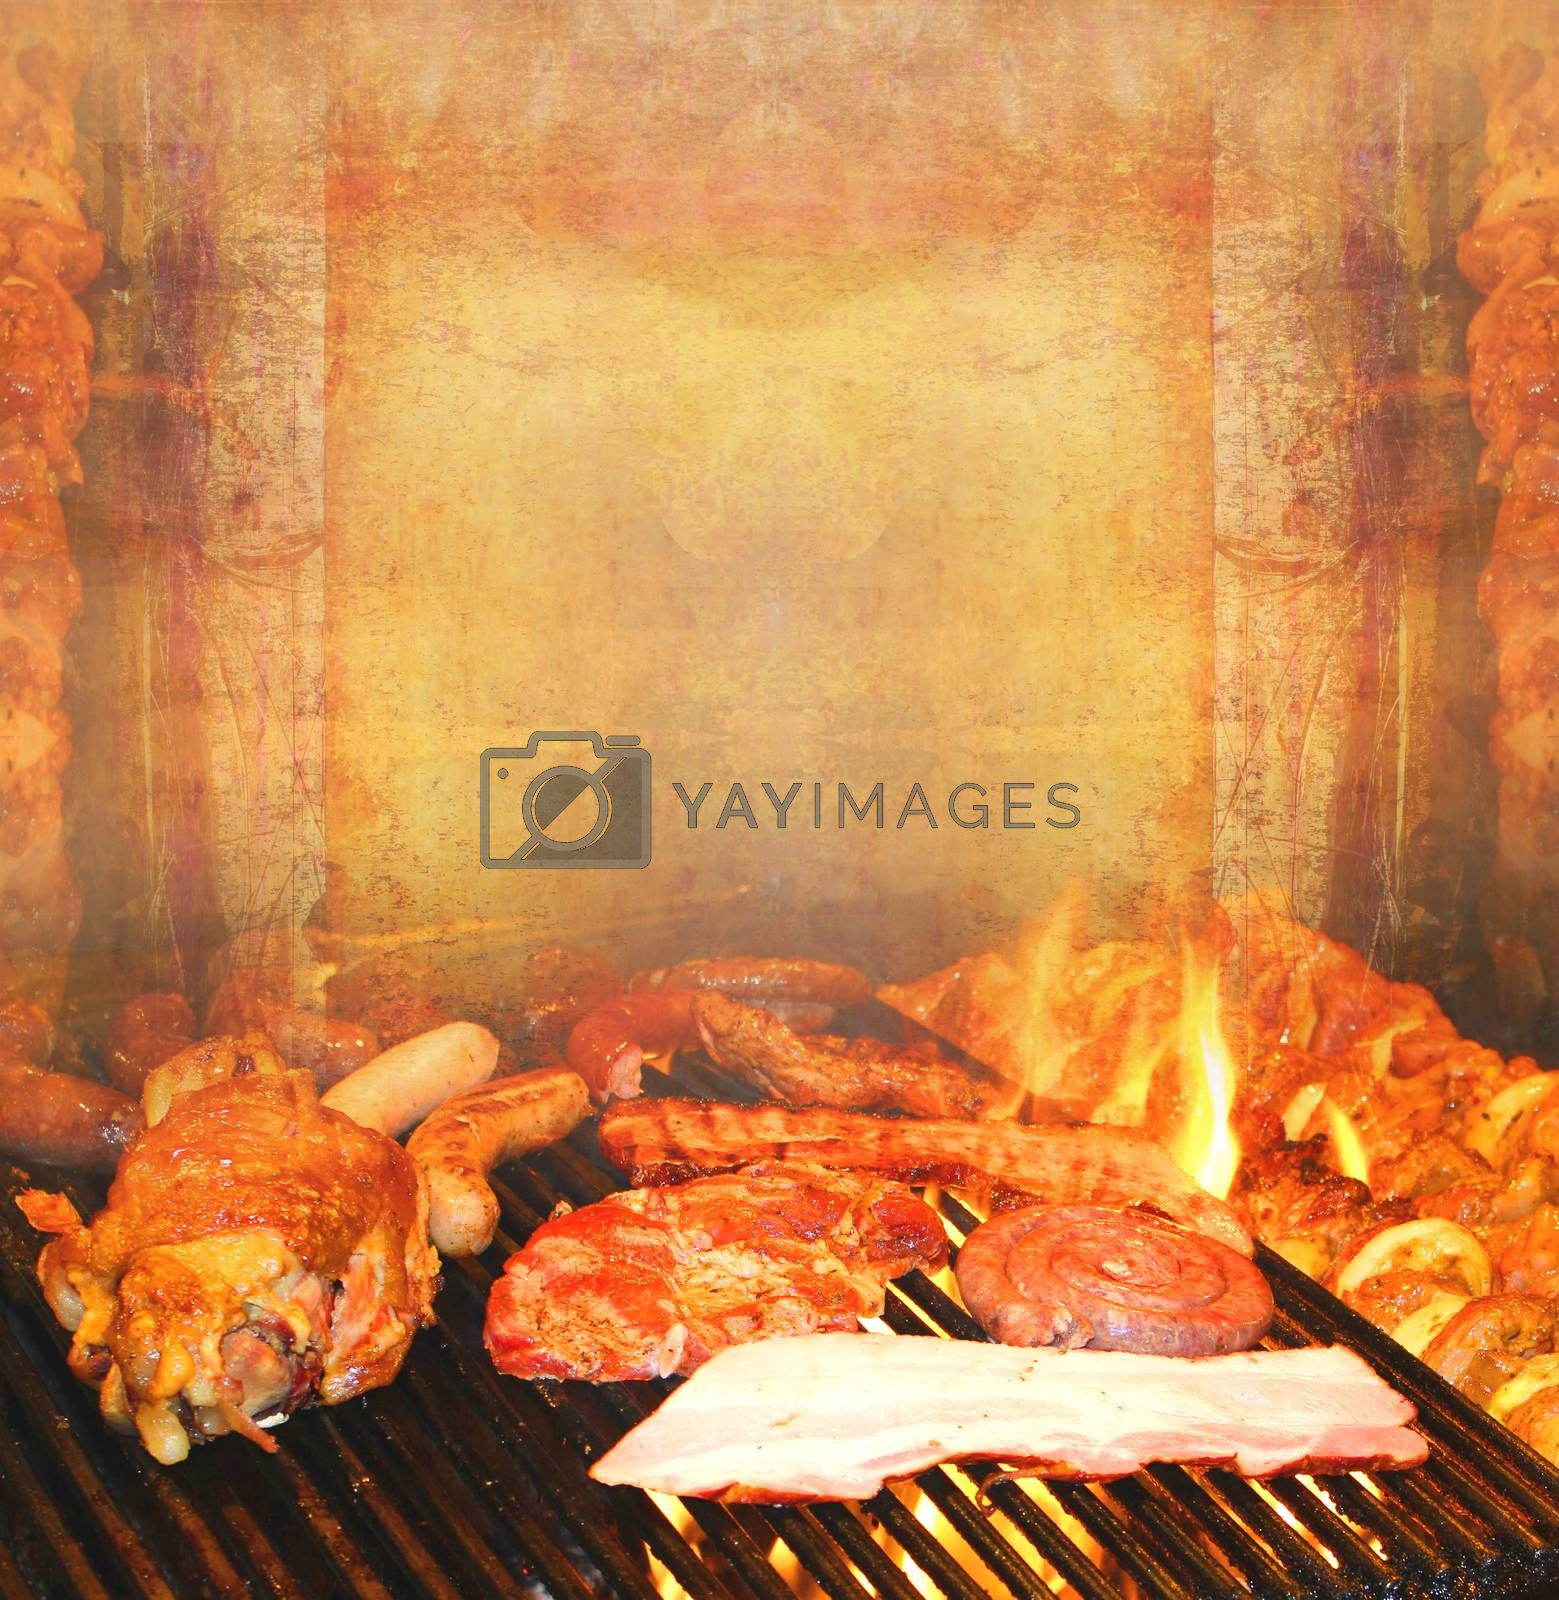 Royalty free image of barbecue with delicious grilled meat ,Abstract vintage frame by JackyBrown